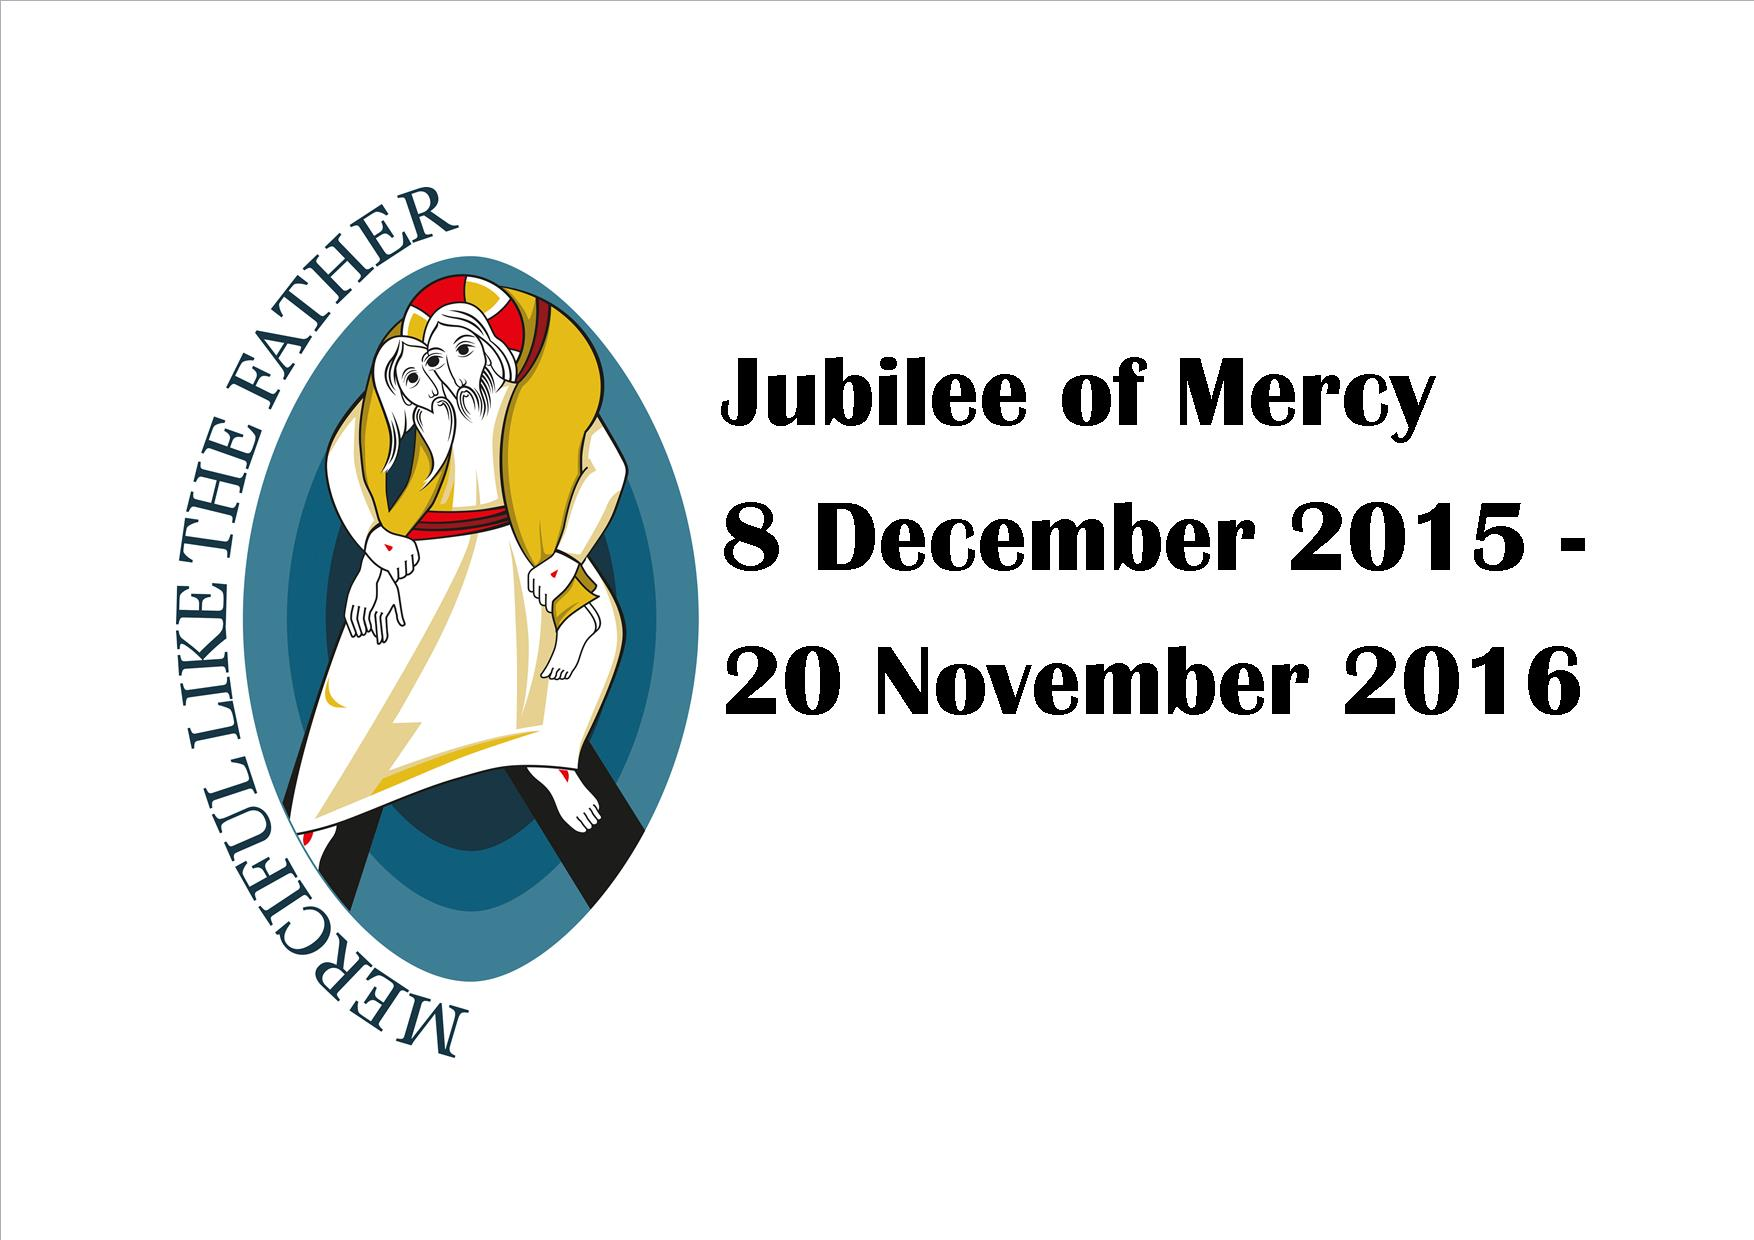 Jubilee of Mercy web image with dates 2